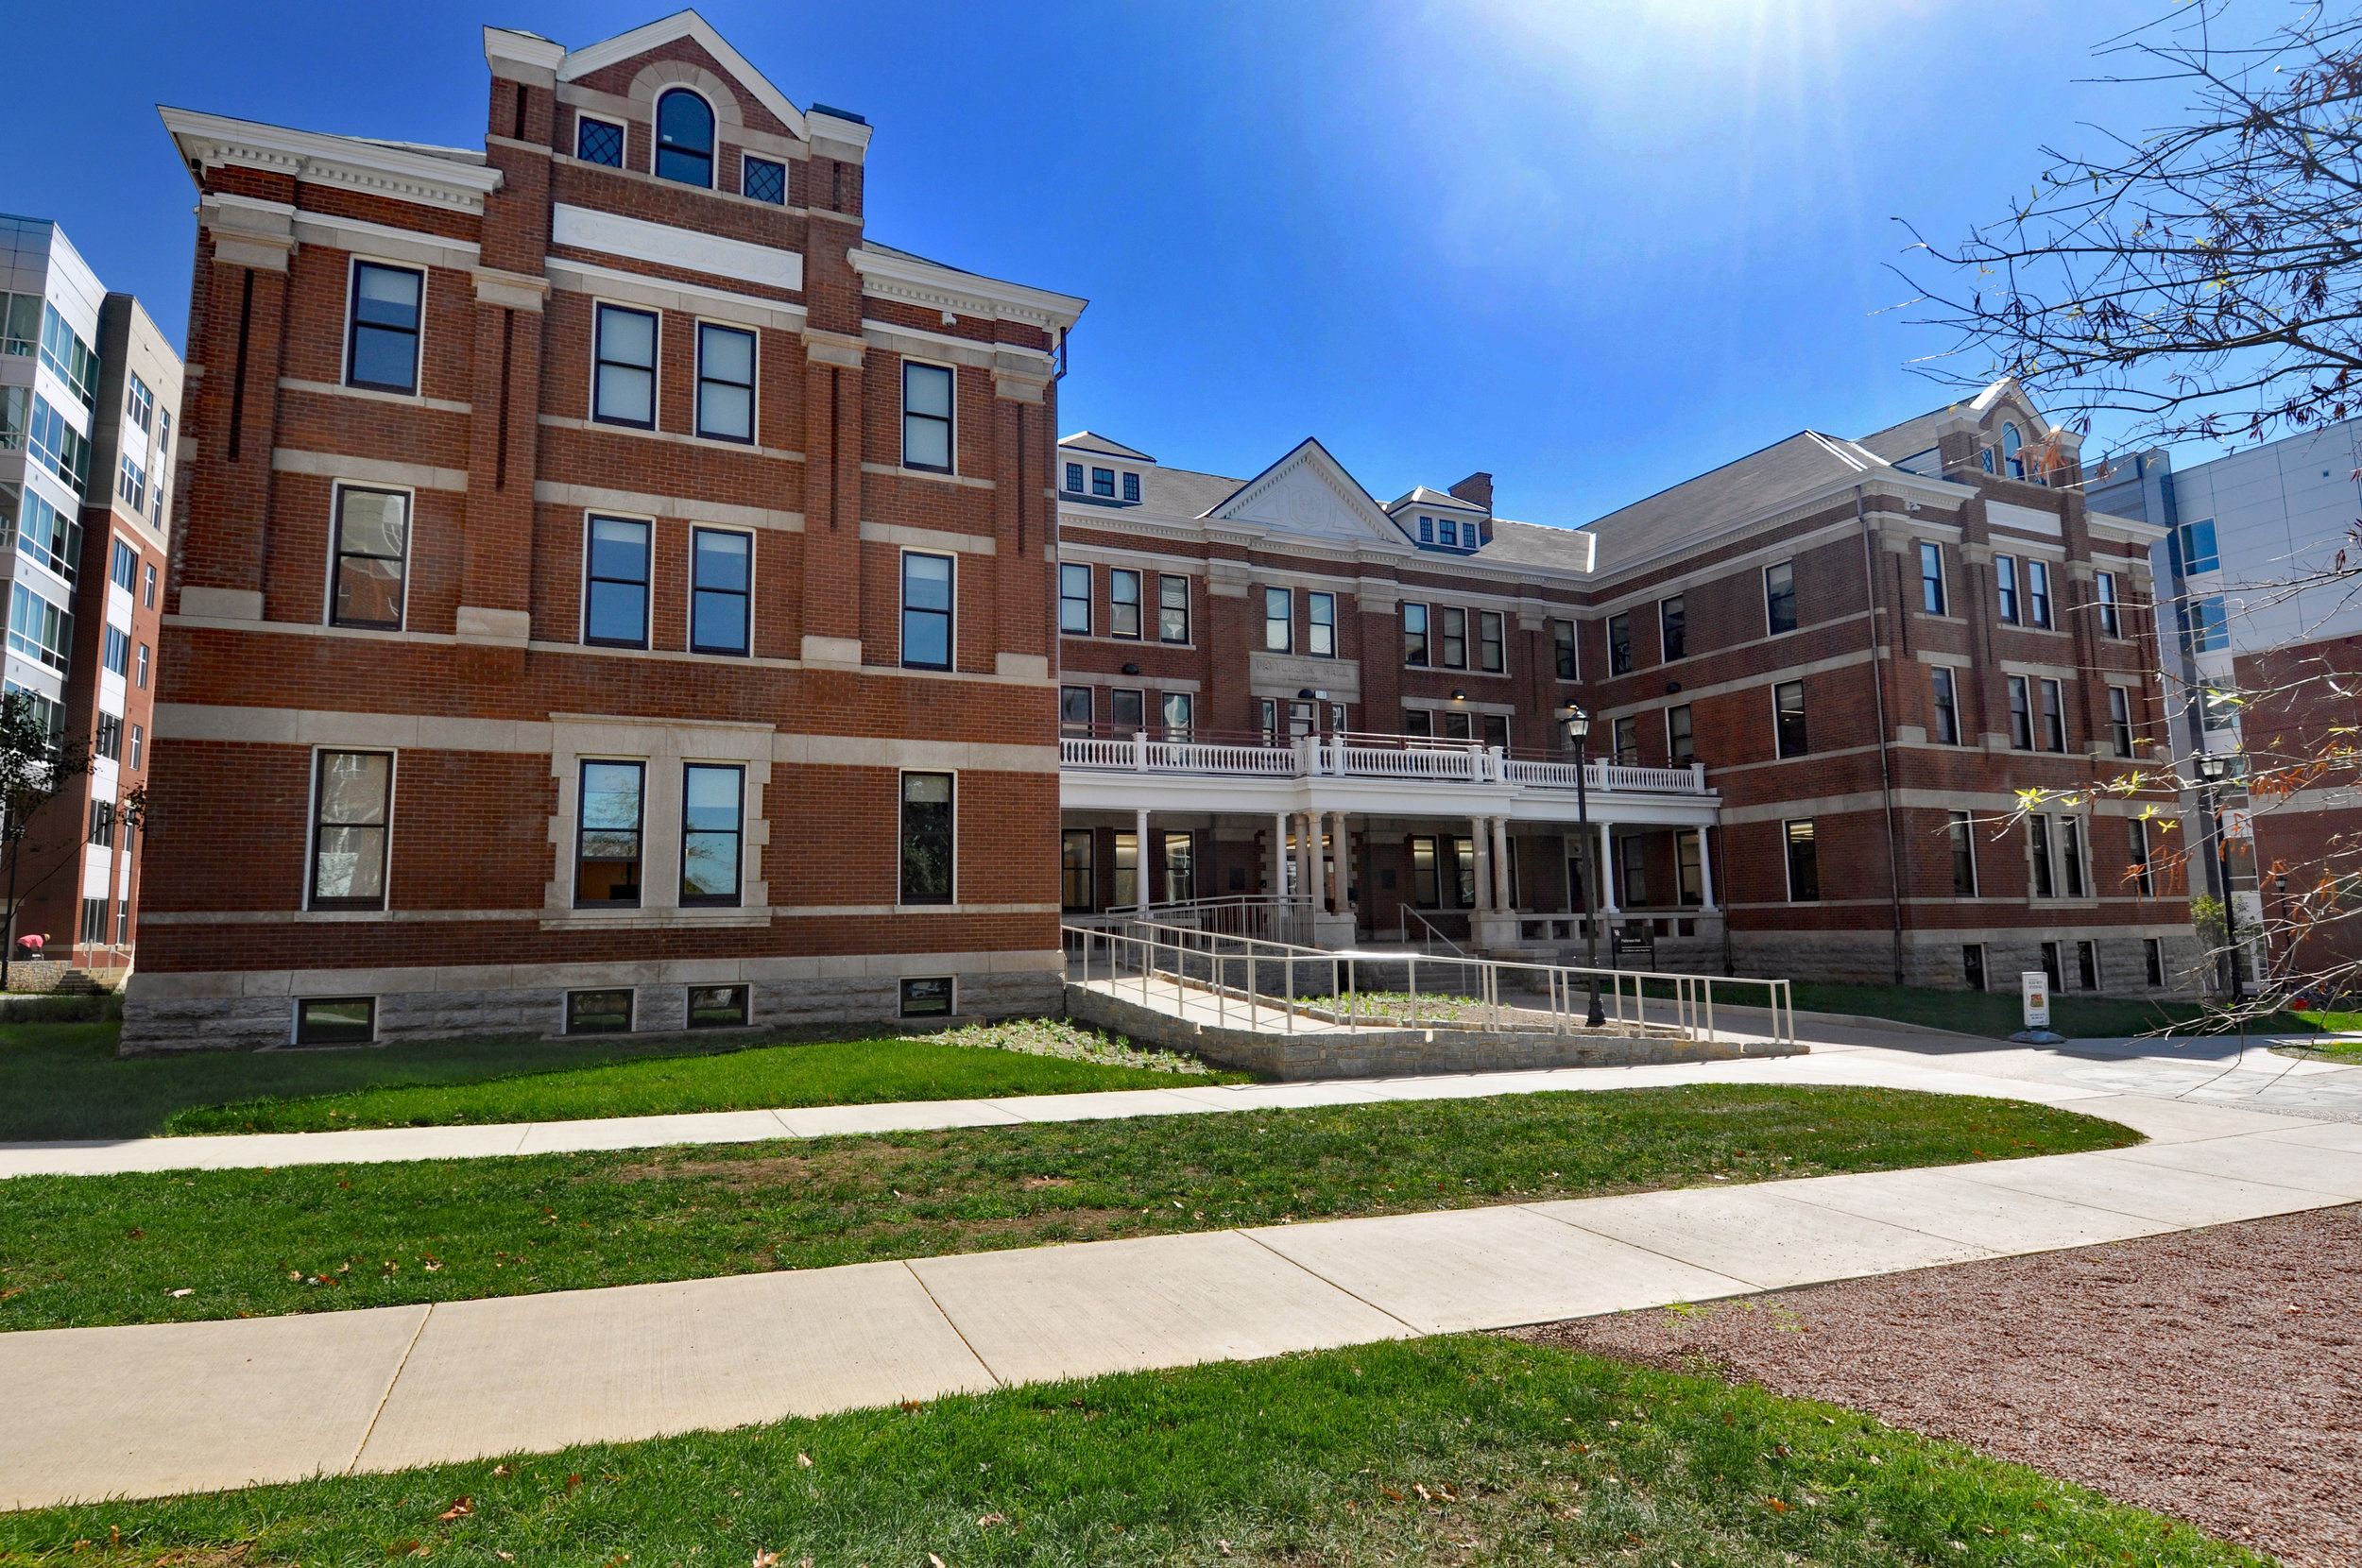 UK Patterson Hall - 10.2% total power reduction33.9% reduction in water use